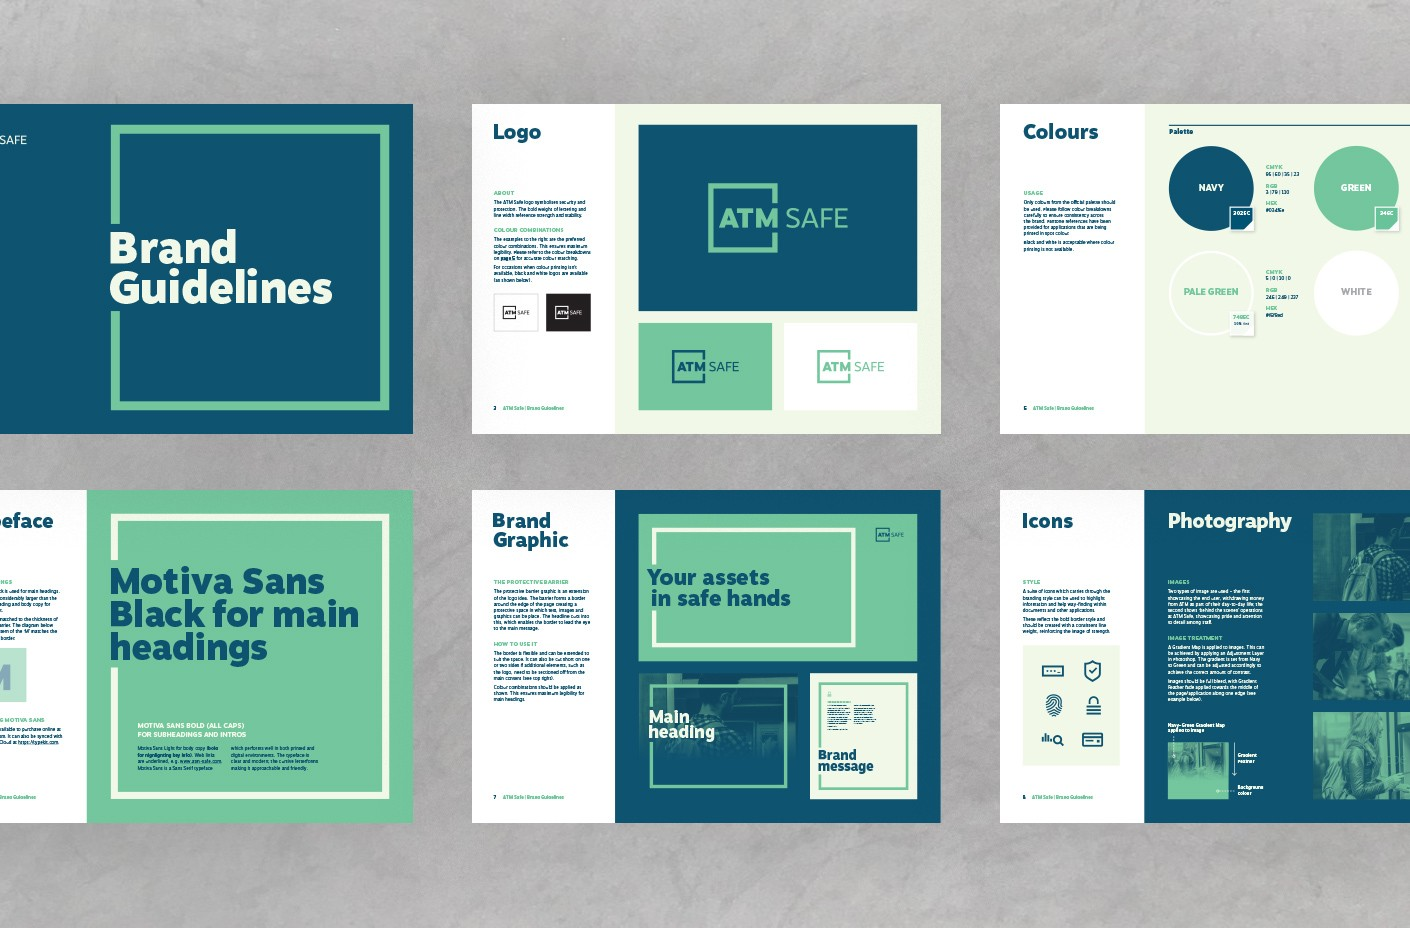 ATM Safe brand guidelines